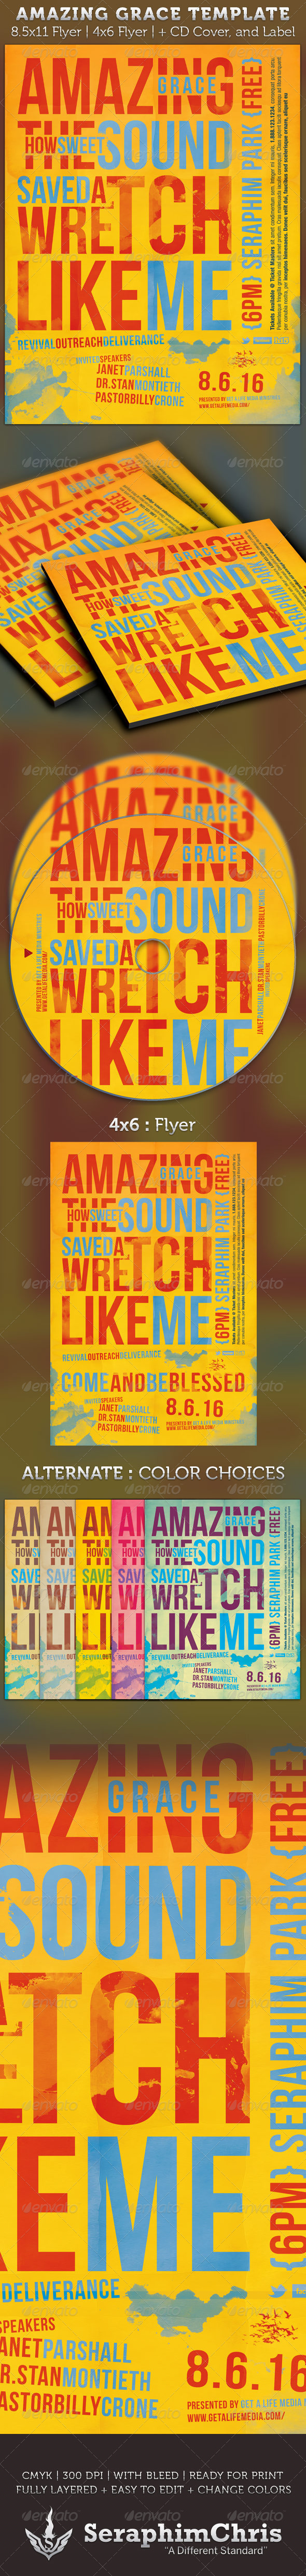 Amazing Grace Flyer and CD Artwork Template - Church Flyers